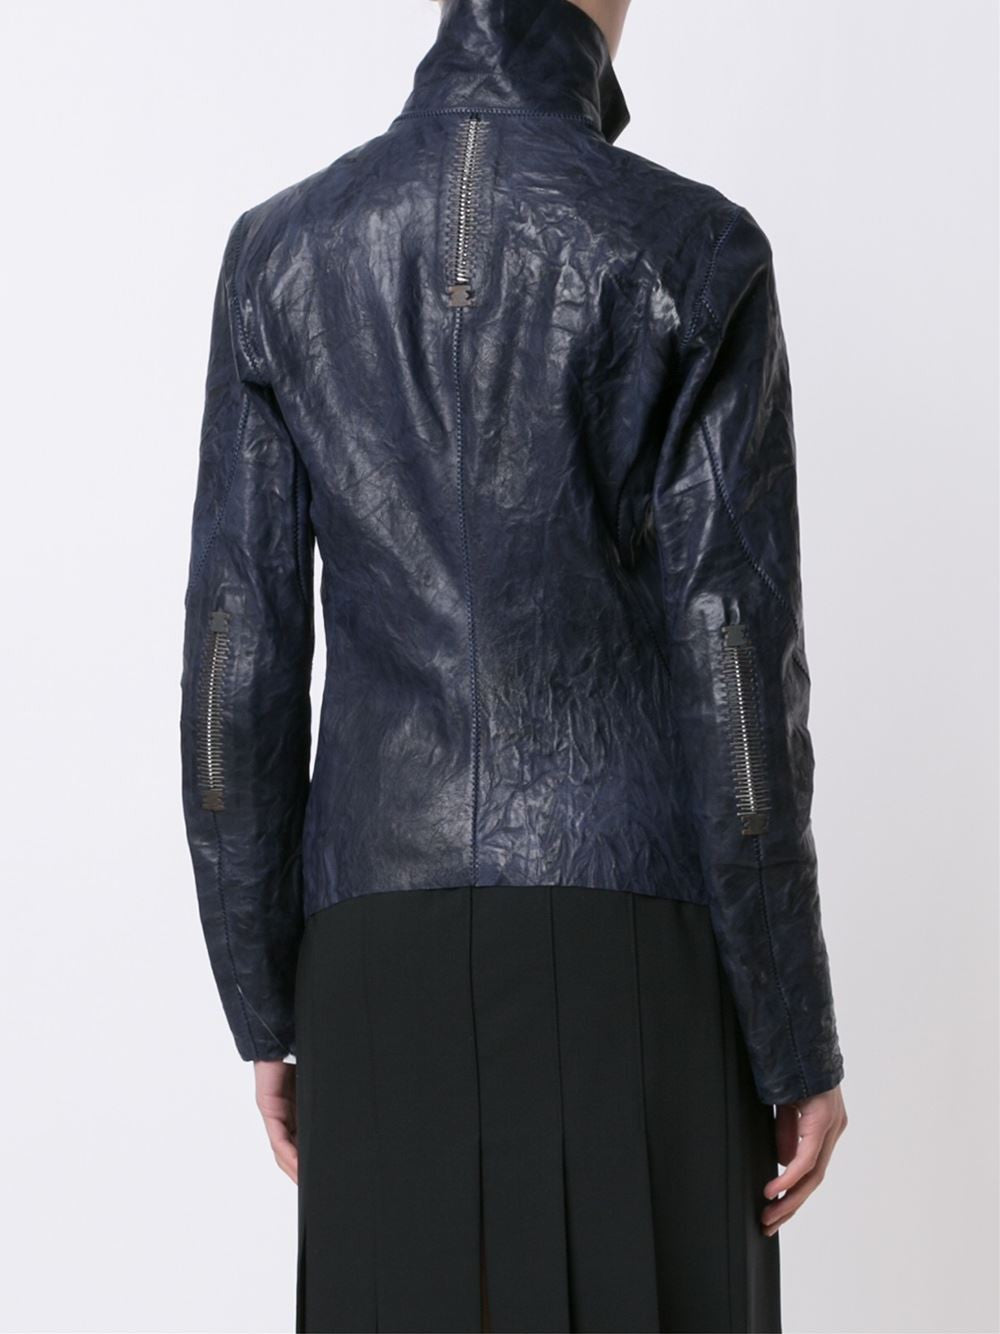 'Imprudente' Leather Jacket | IMPRUDENTE